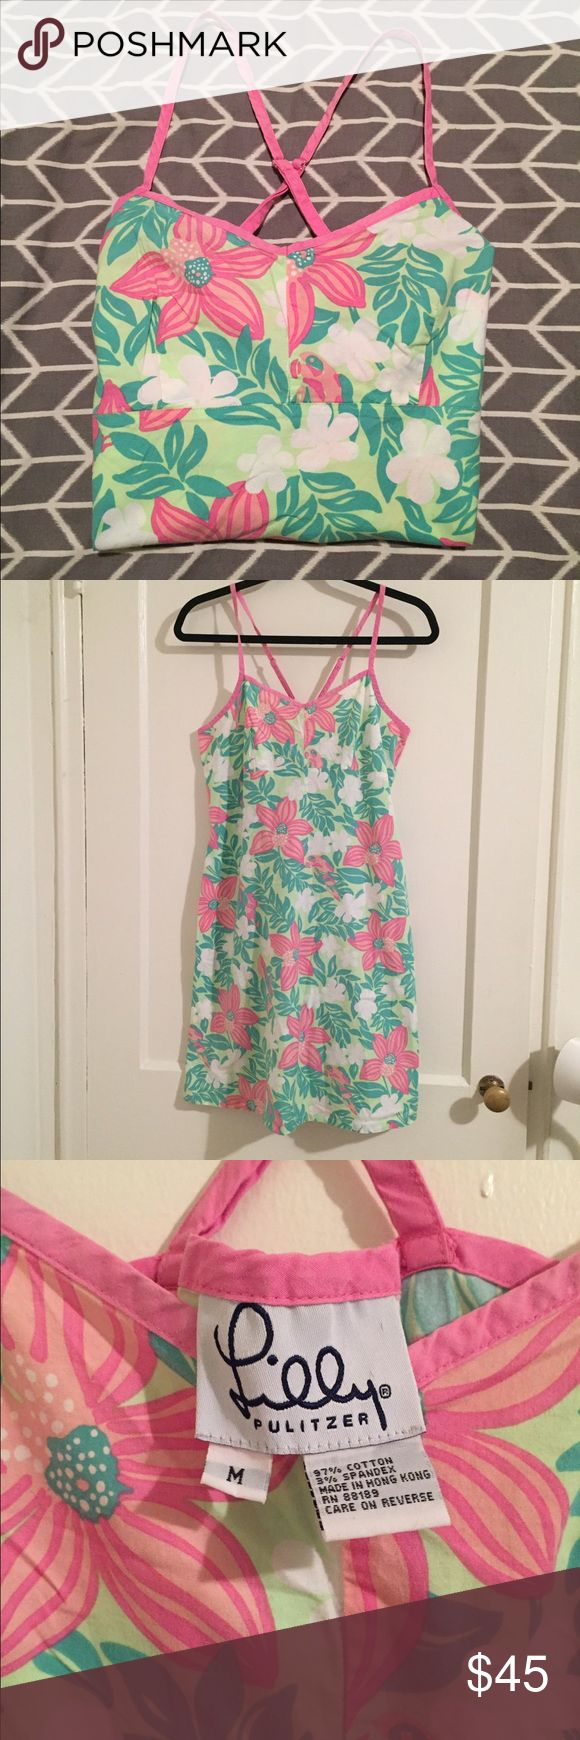 • VINTAGE LILLY PULITZER • dress Vintage Lilly Pulitzer dress! Size M! String straps & cross back! Super cute & excellent condition! Lilly Pulitzer Dresses Mini